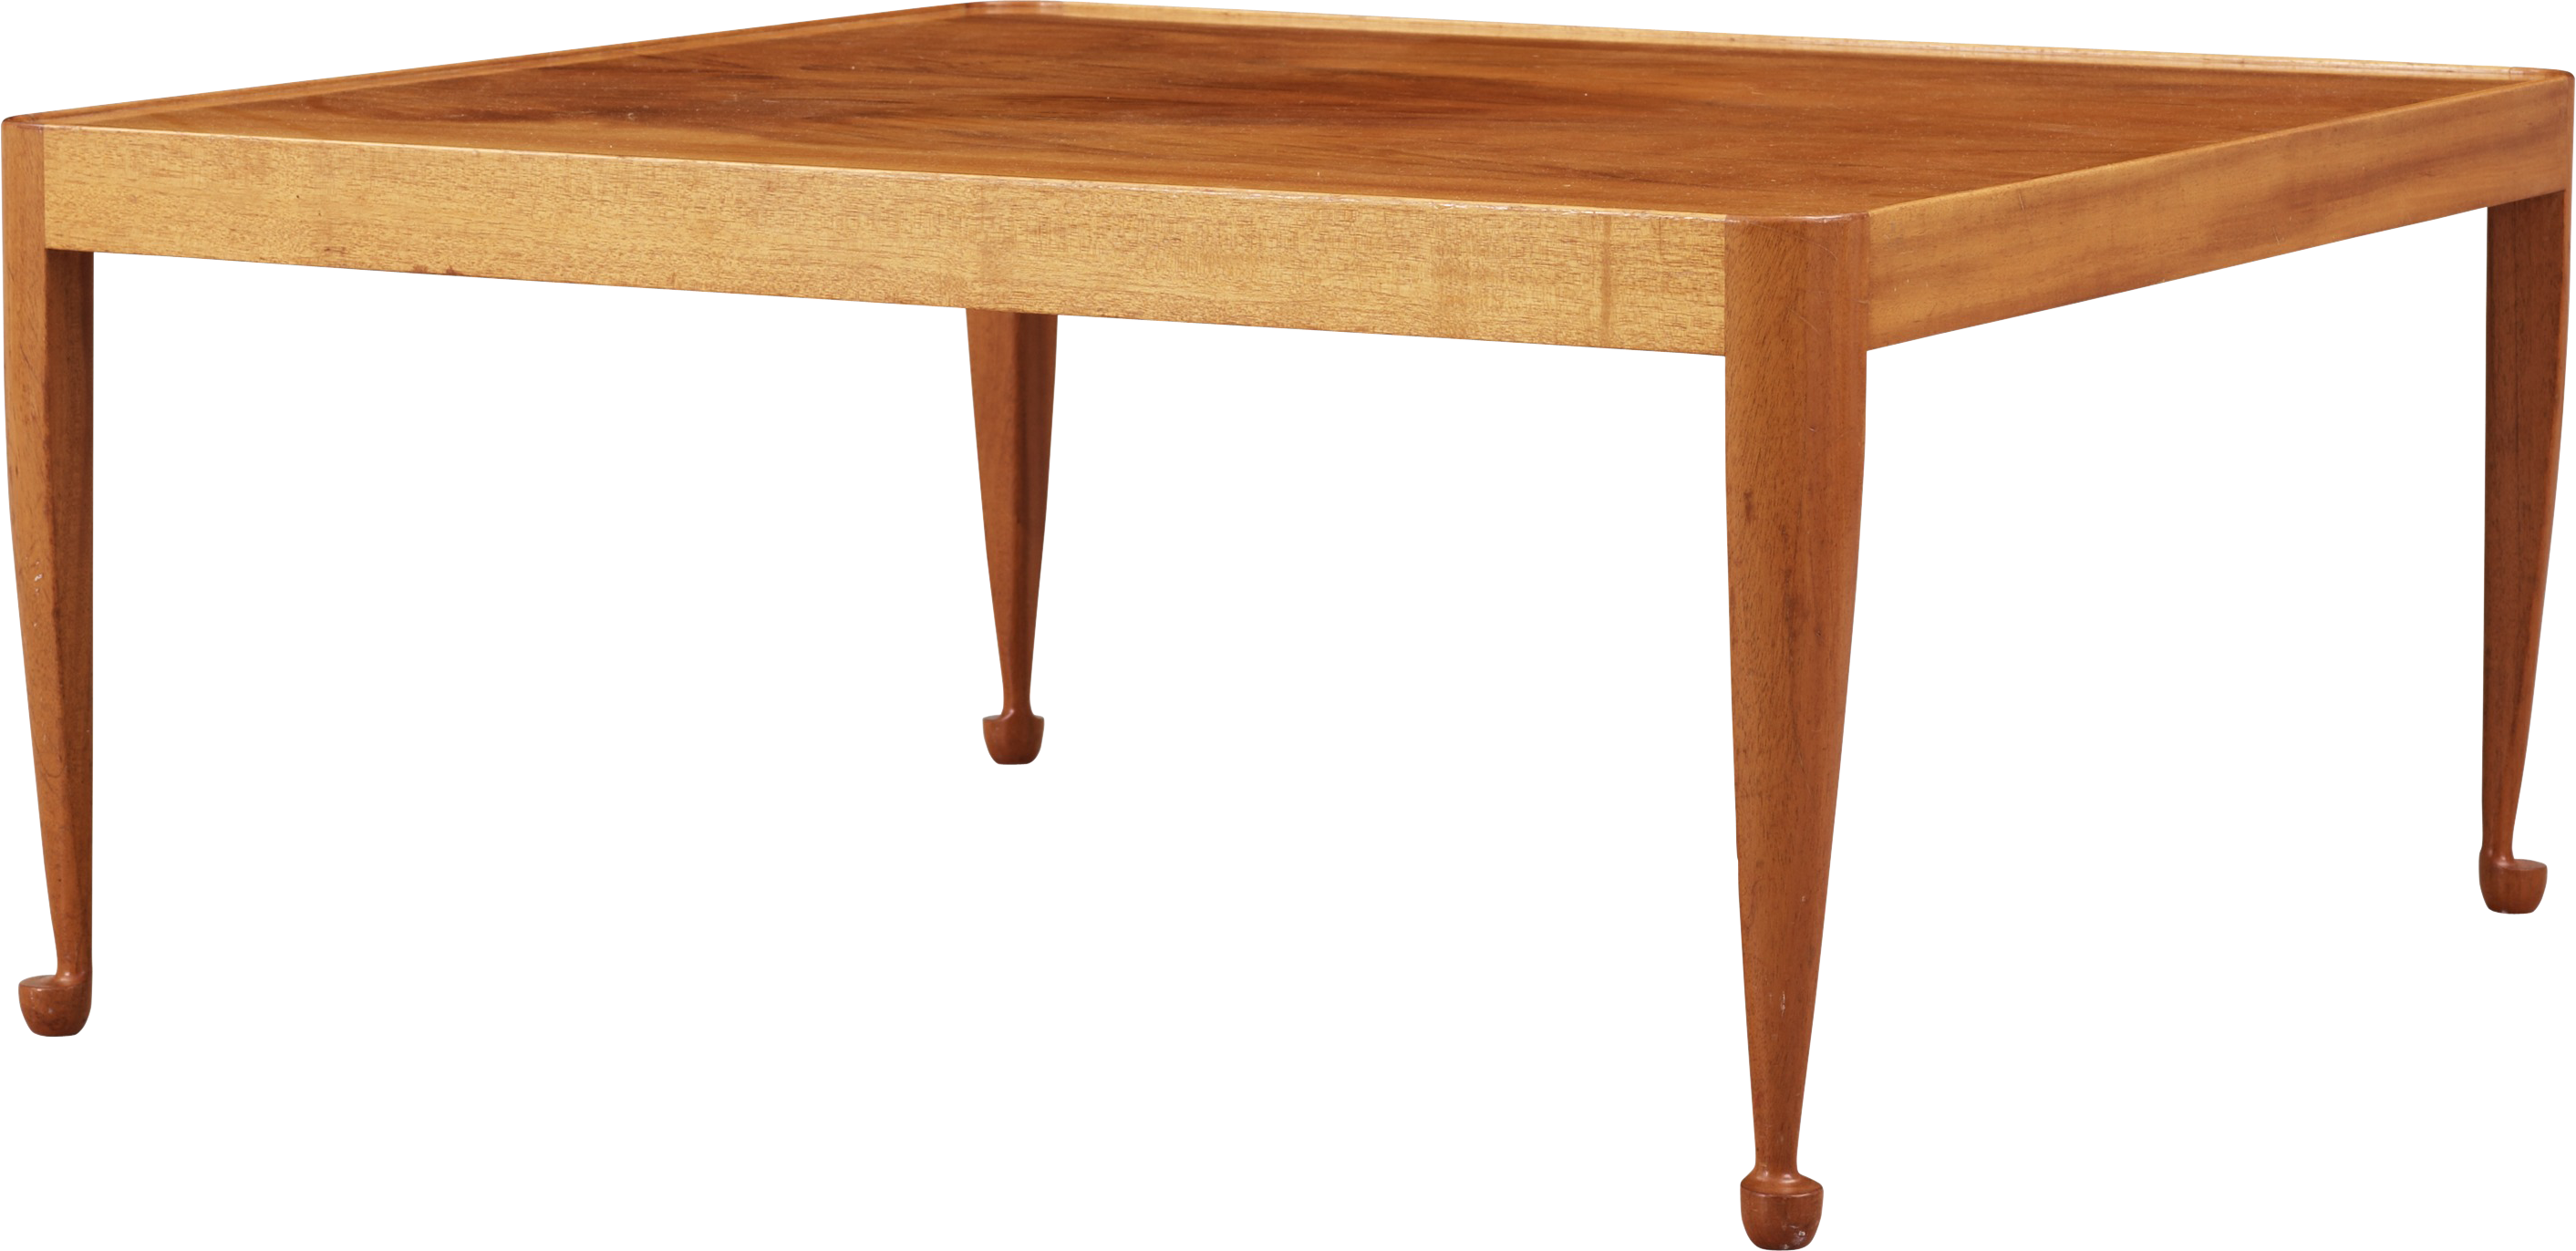 Furniture clipart rectangular table. Png web icons download